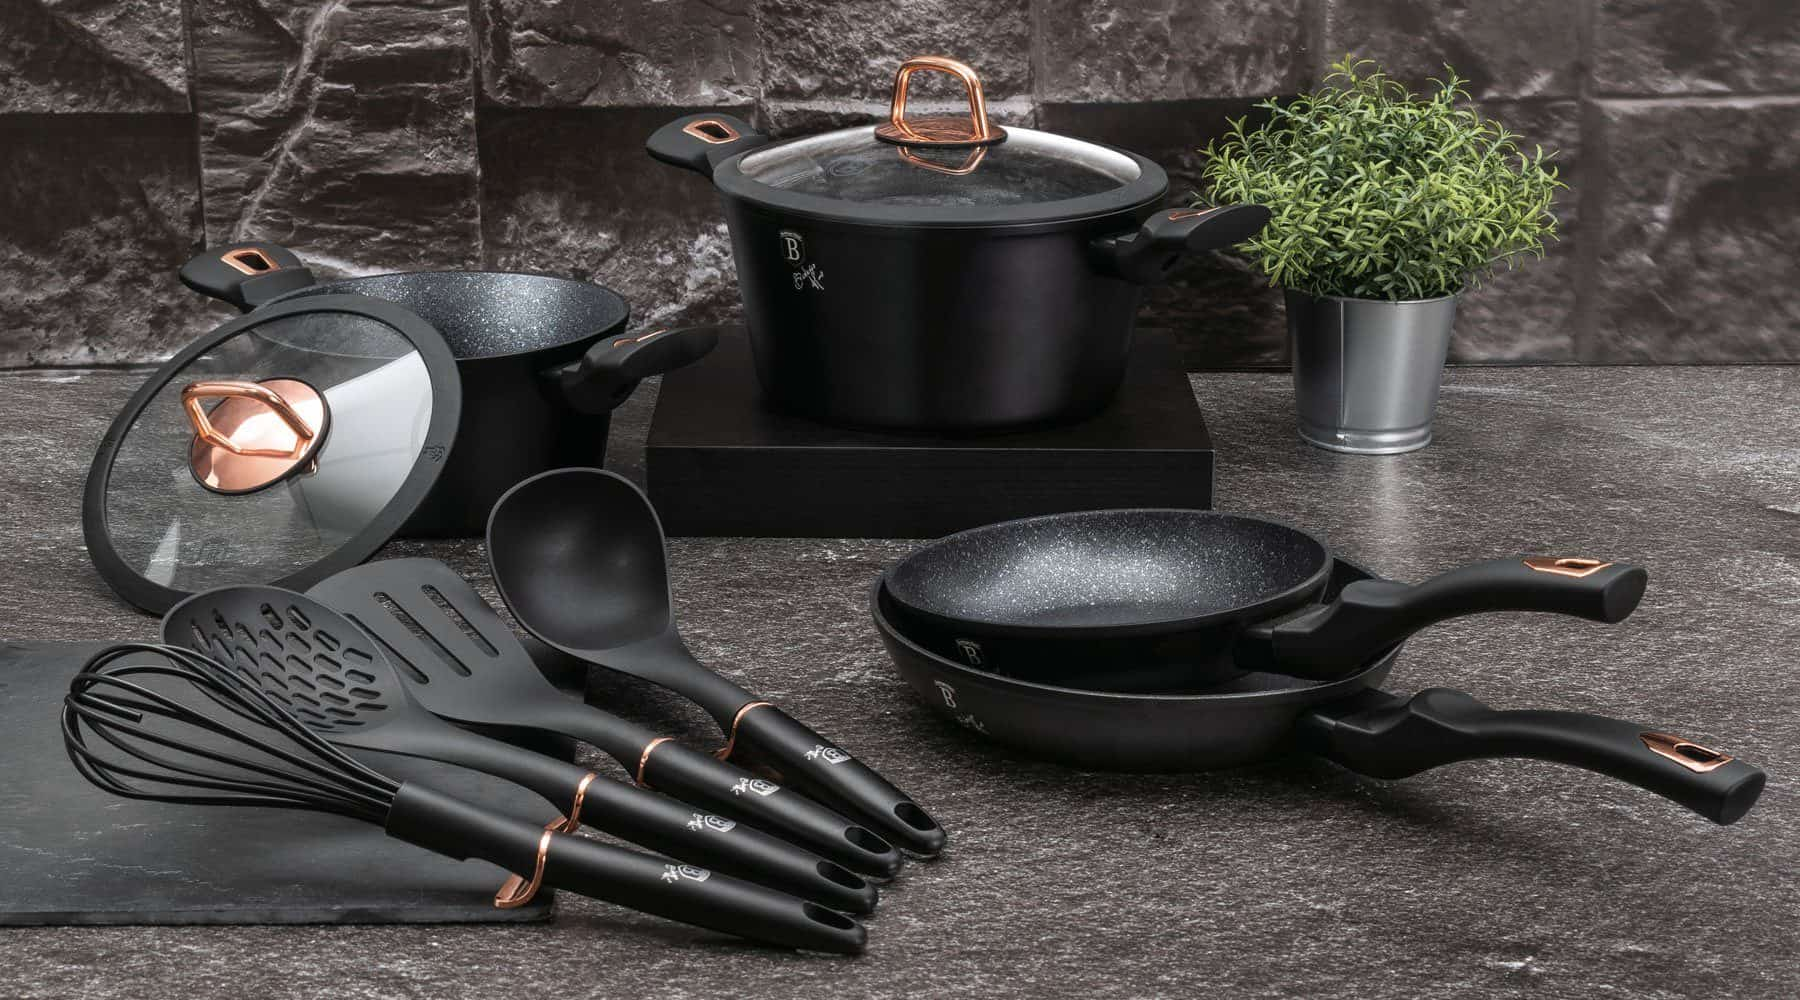 The Best Quality And Price With Berlinger Haus - Plattershare - Recipes, Food Stories And Food Enthusiasts